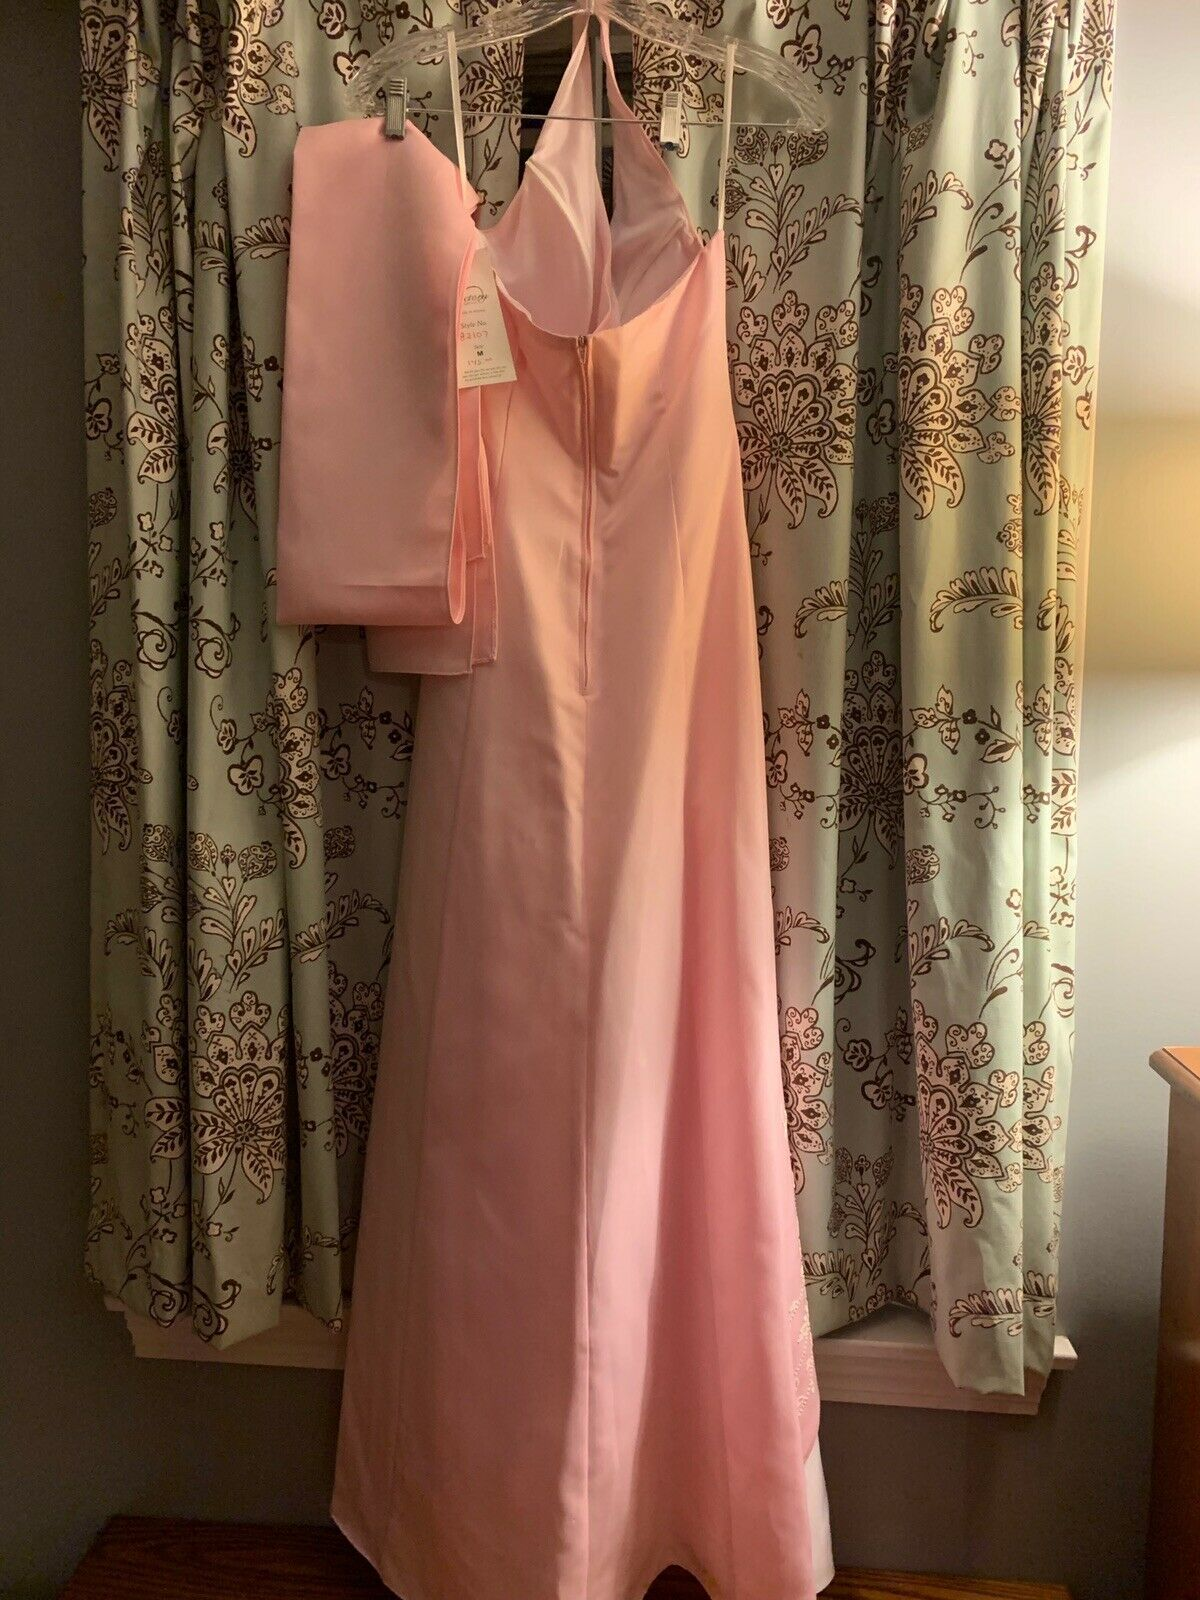 Women's Pink Floor Length Gown With Sash Size 8